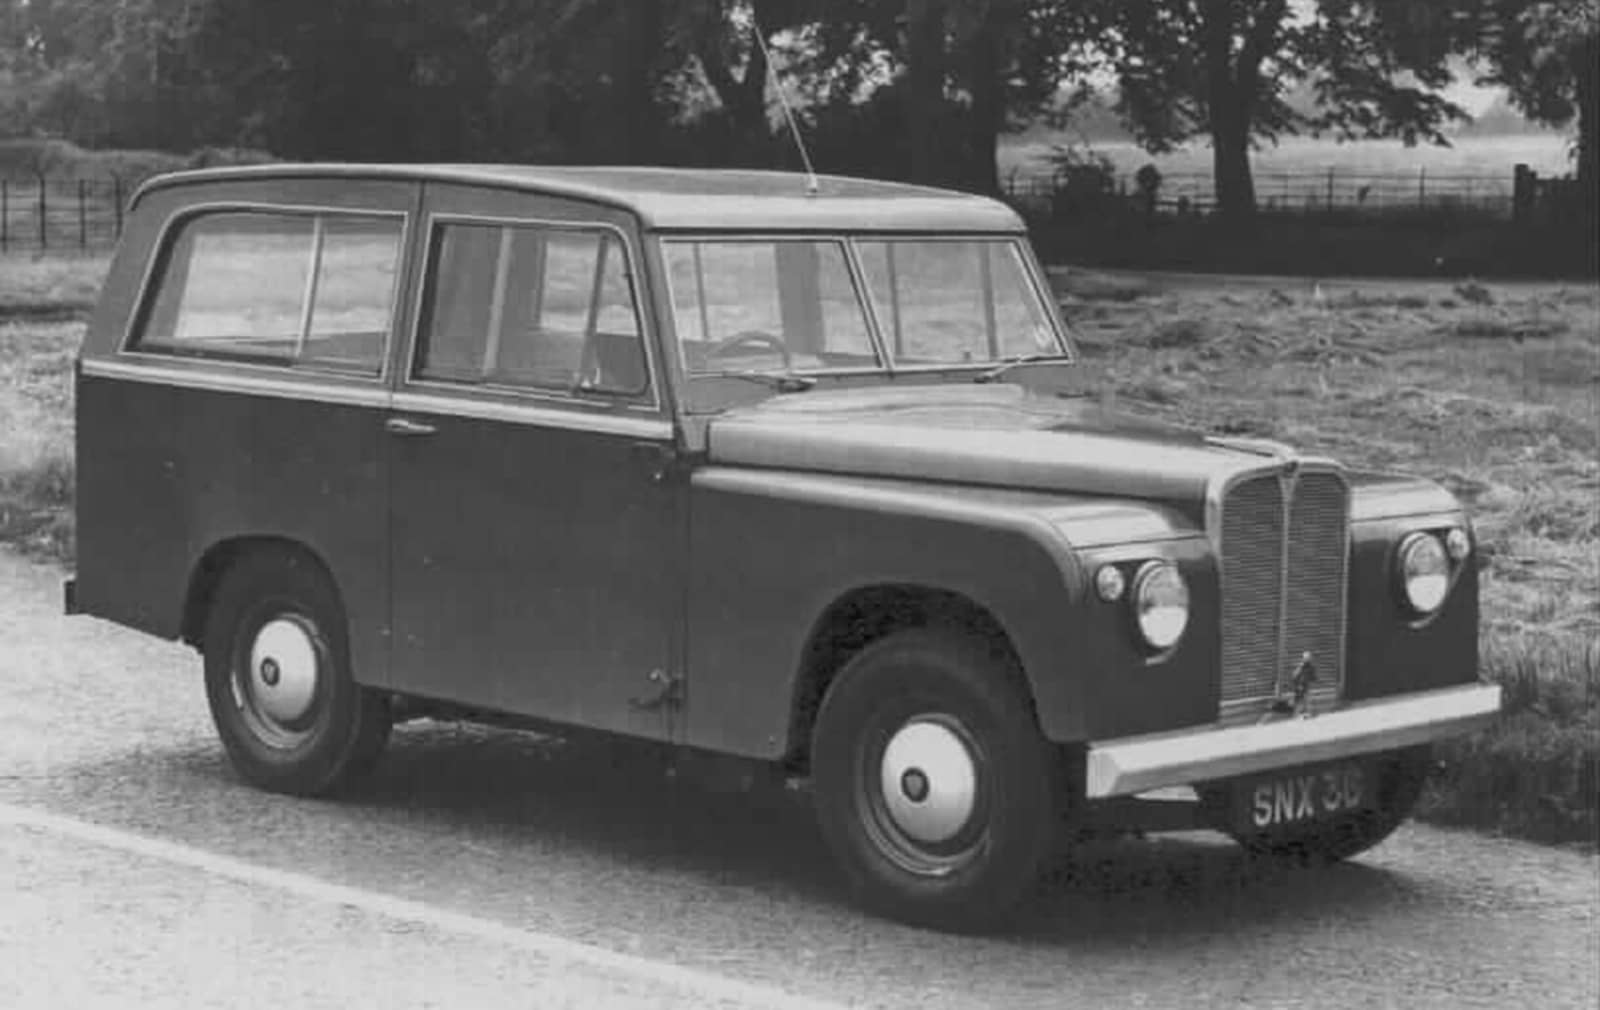 land-rover-road-rover-snx-36-from-the-1950s_100624616_h